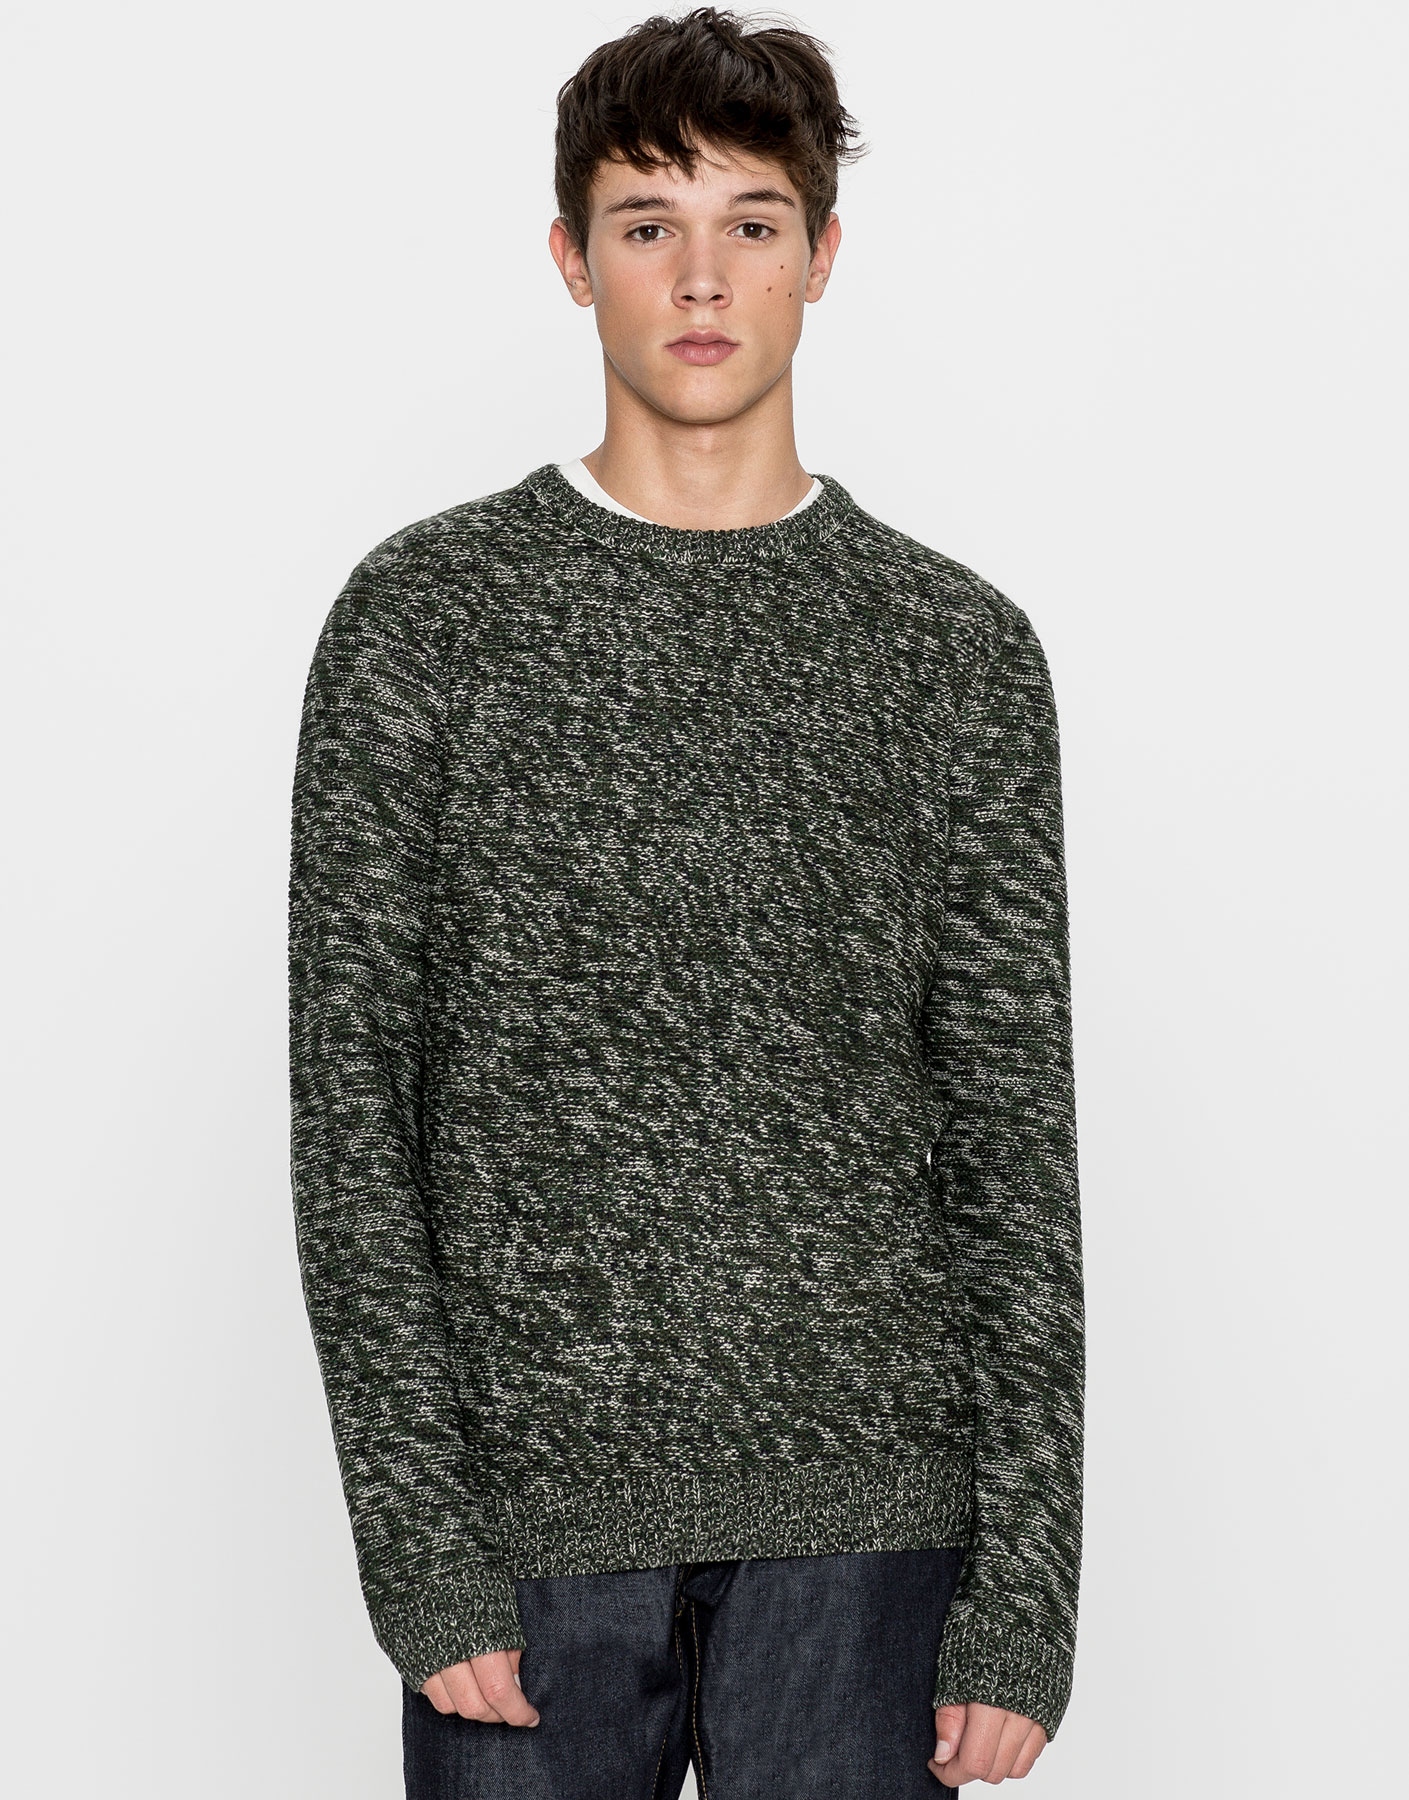 Camouflage textured weave sweater